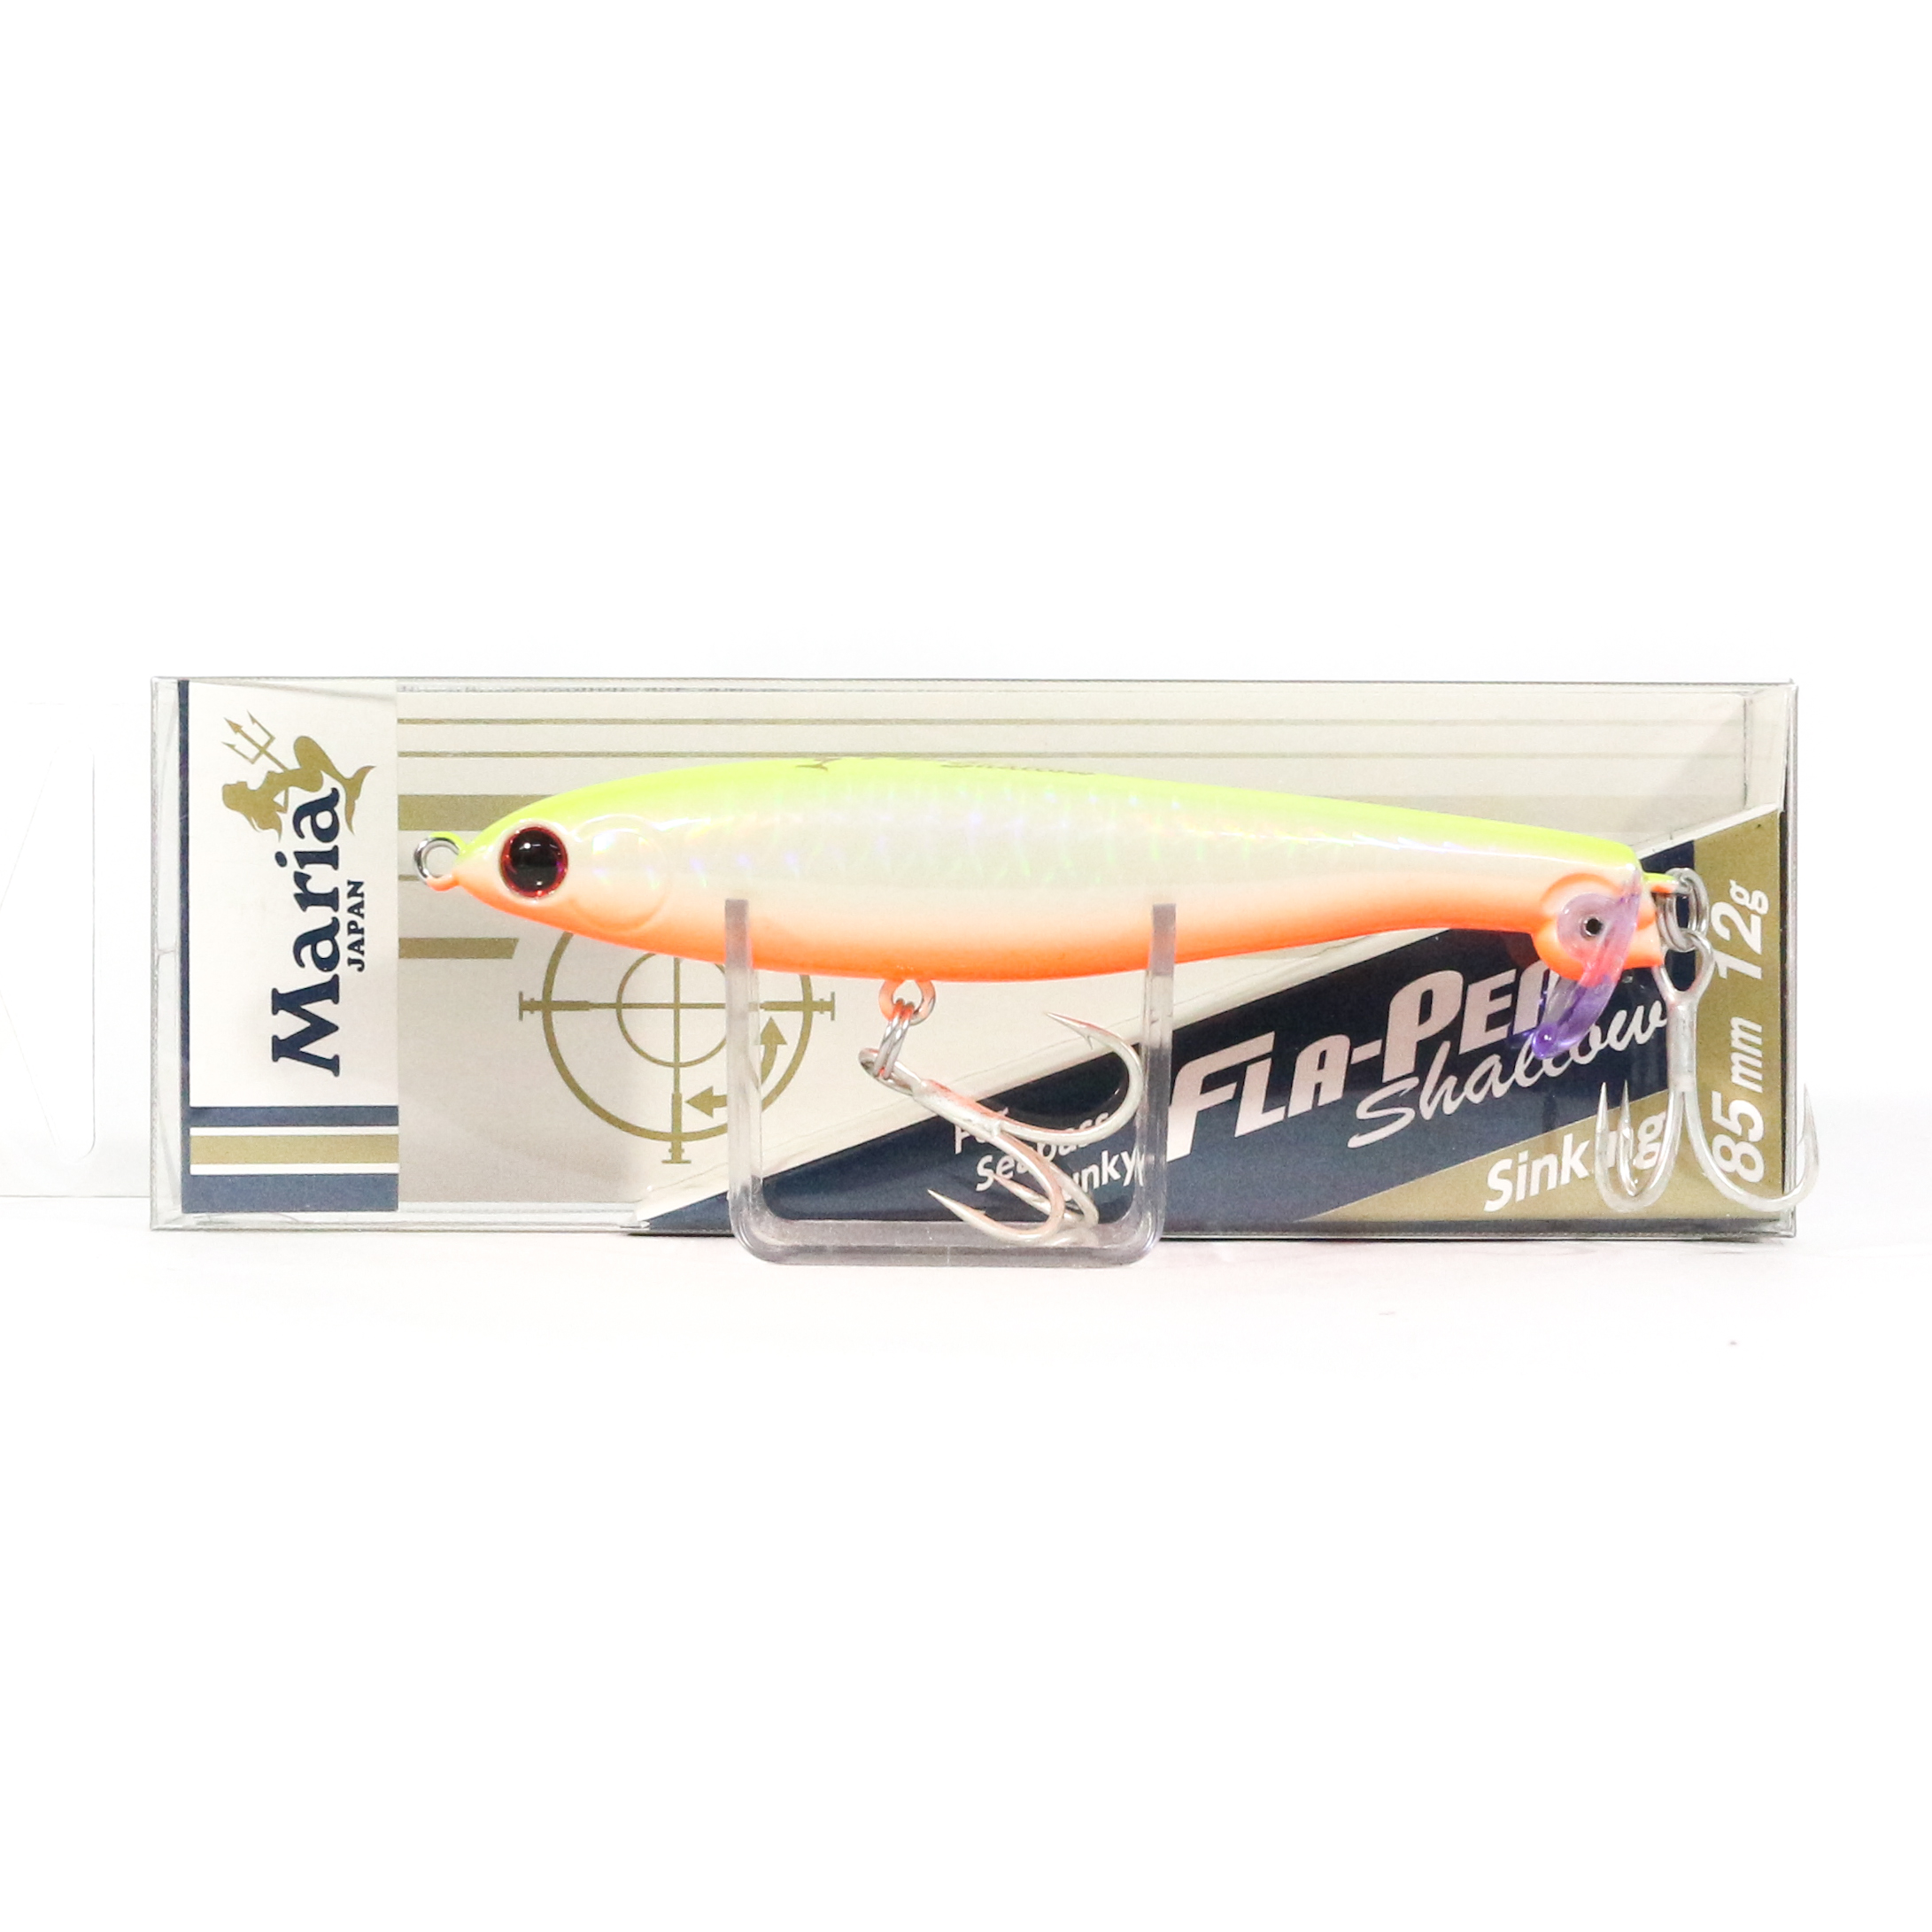 Maria Fla Pen S85 Shallow Fluttering Pencil Sinking Lure 05P (0671)